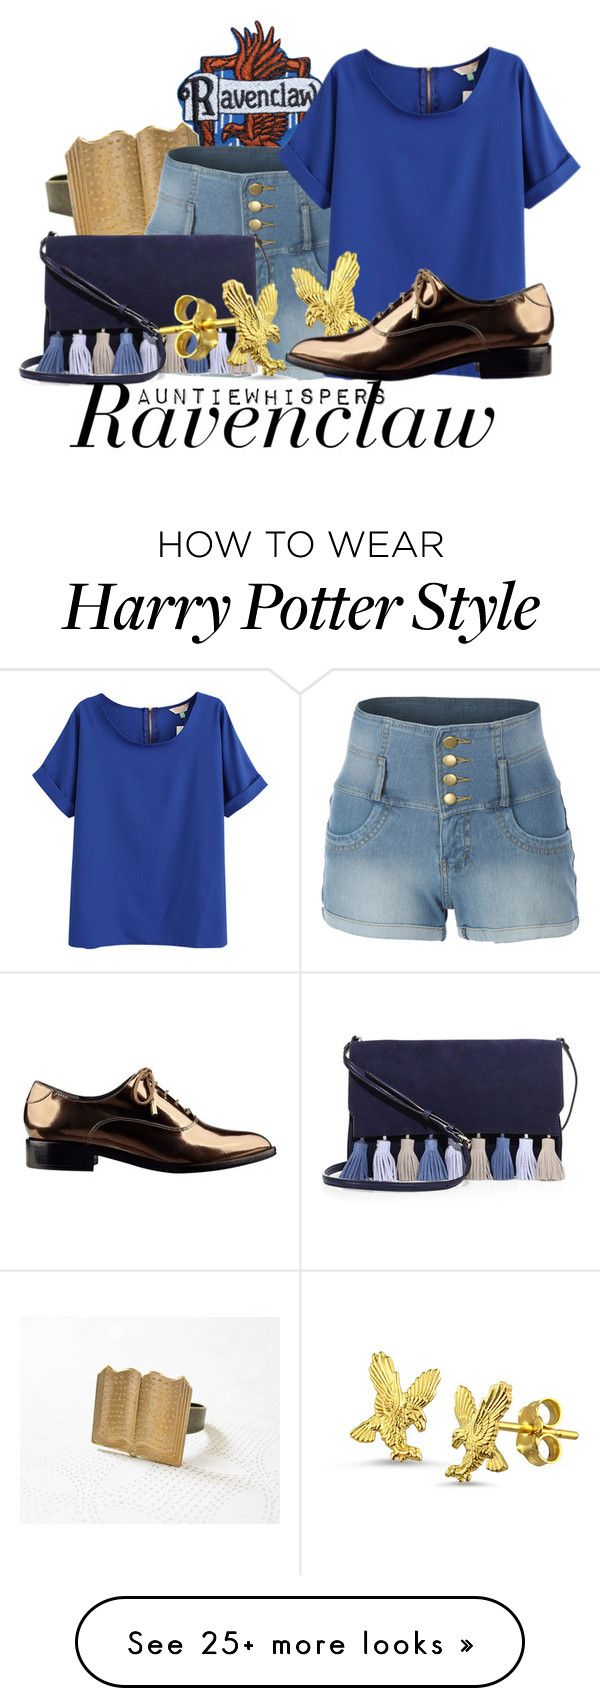 """Ravenclaw"" by auntiewhispers on Polyvore featuring LE3NO, Rebecca Minkoff, Sigerson Morrison, harrypotter and ravenclaw"